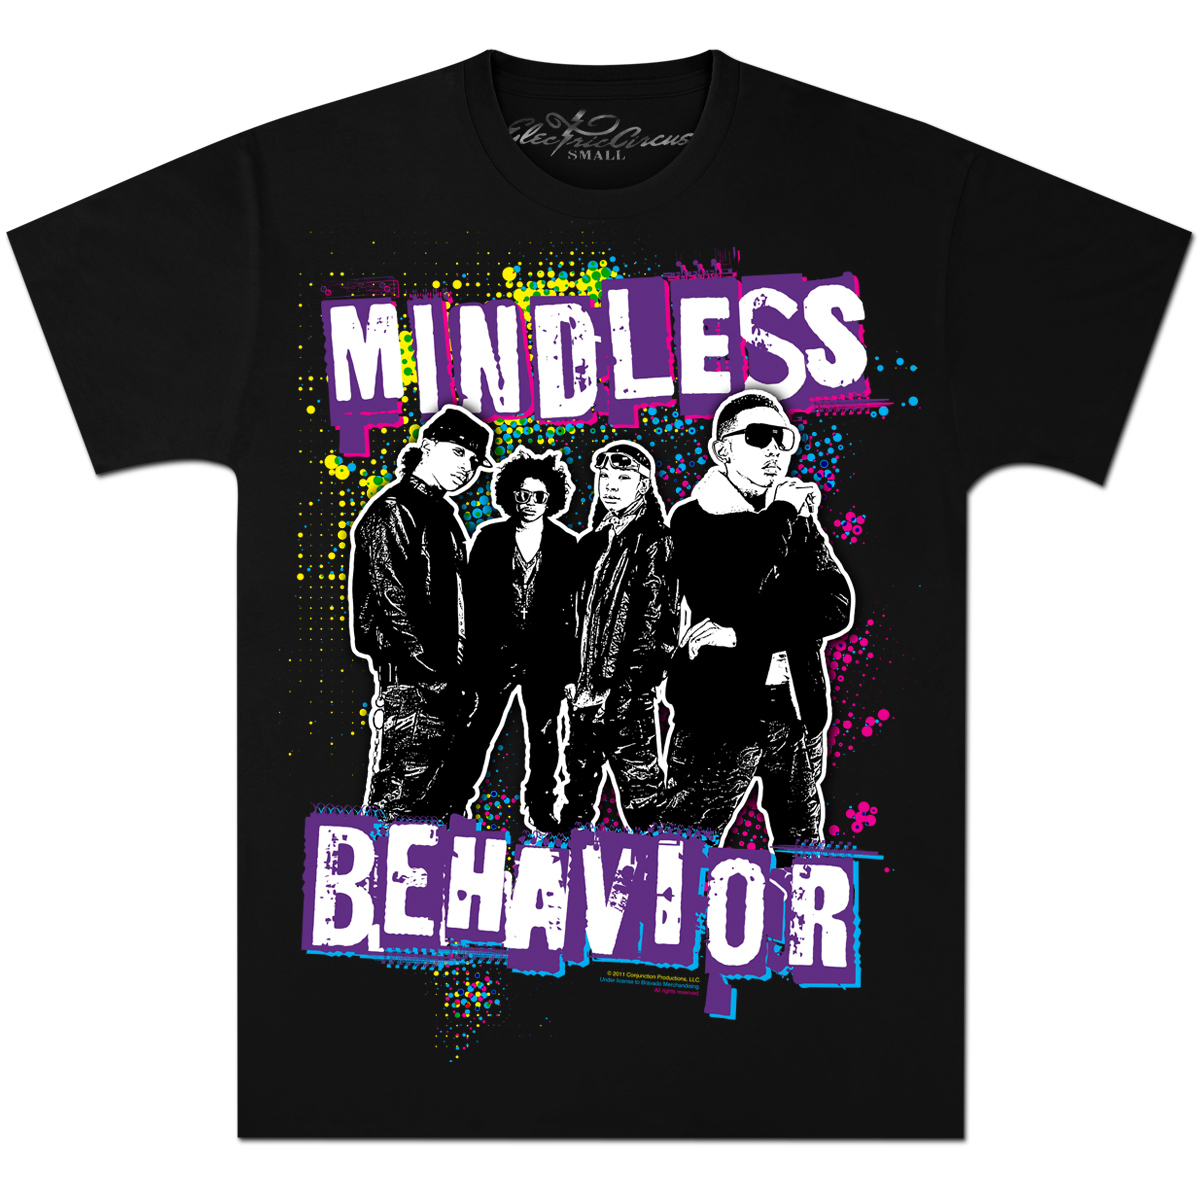 Mindless Behavior Spray Stencil T-Shirt